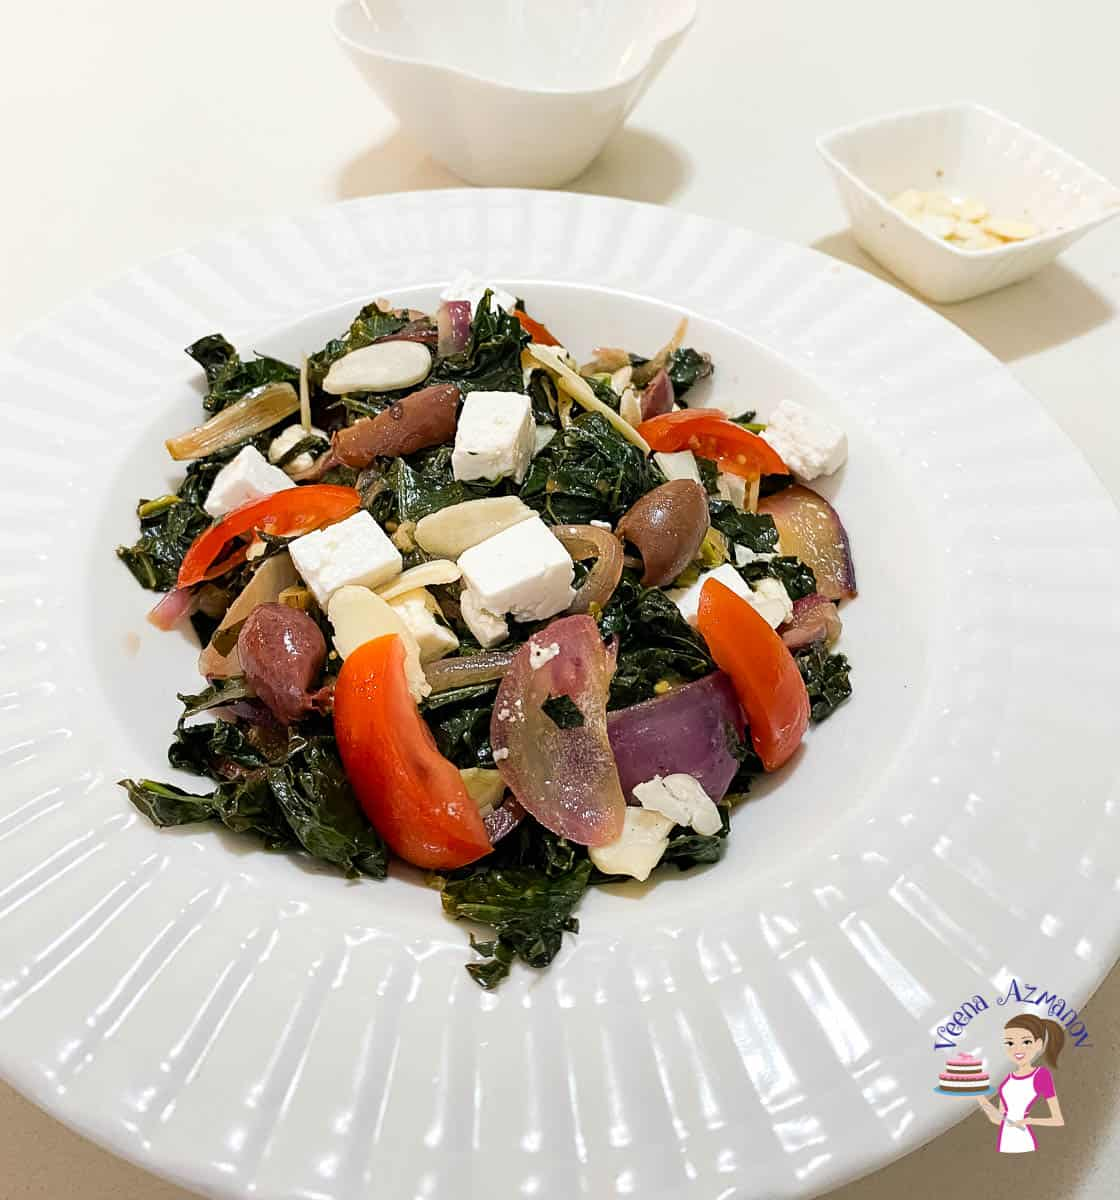 A white plate with kale, feta and olives